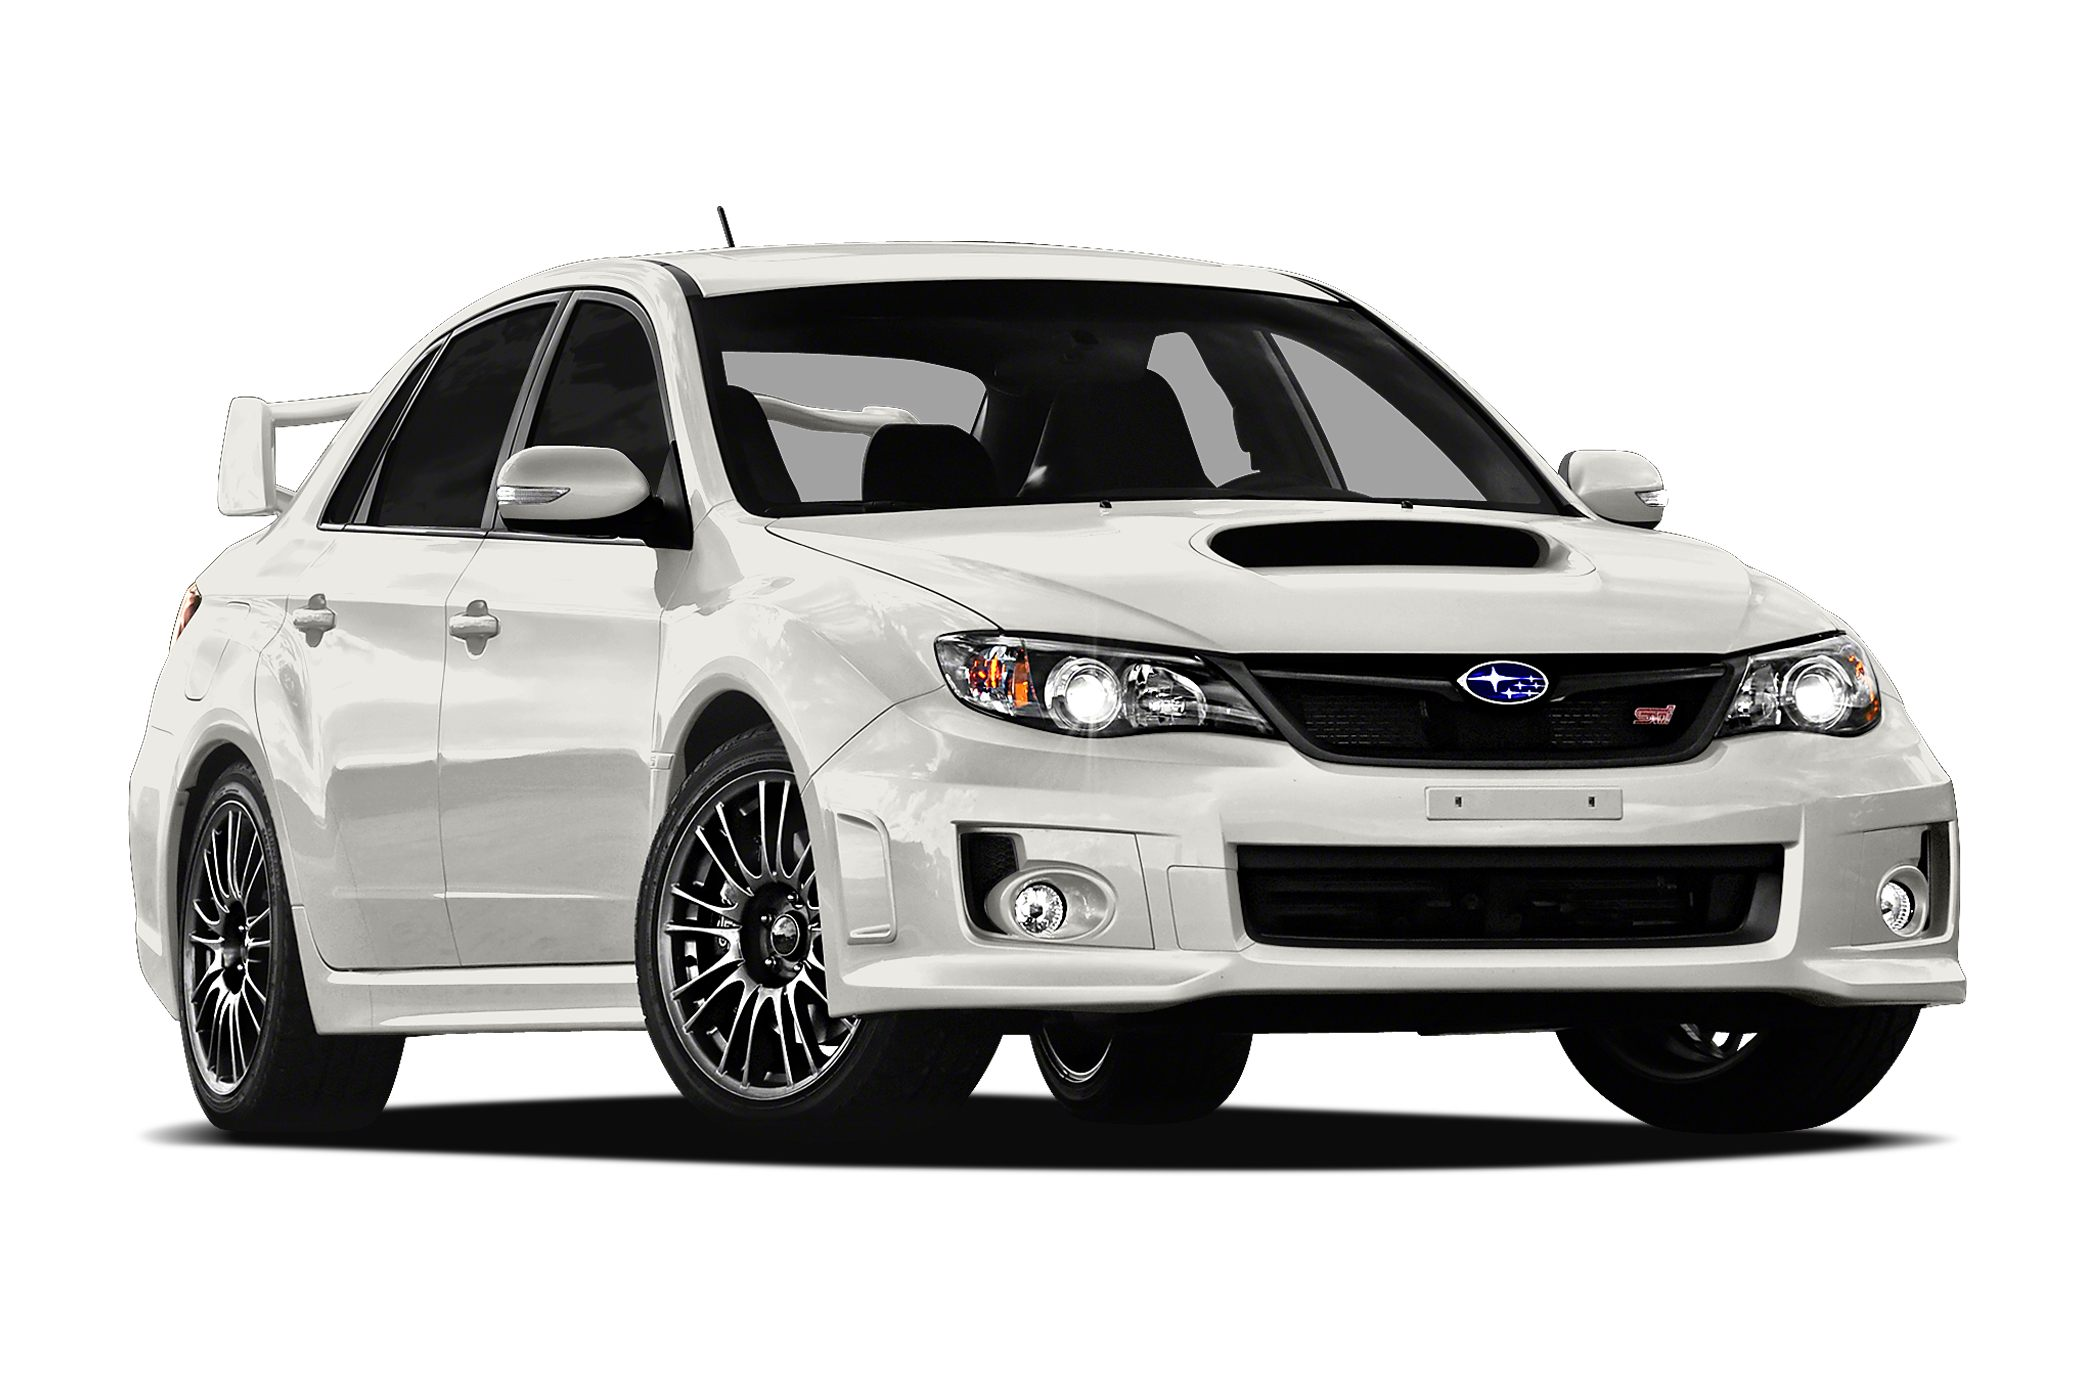 2012 subaru impreza wrx sti base 4dr all-wheel drive sedan pricing